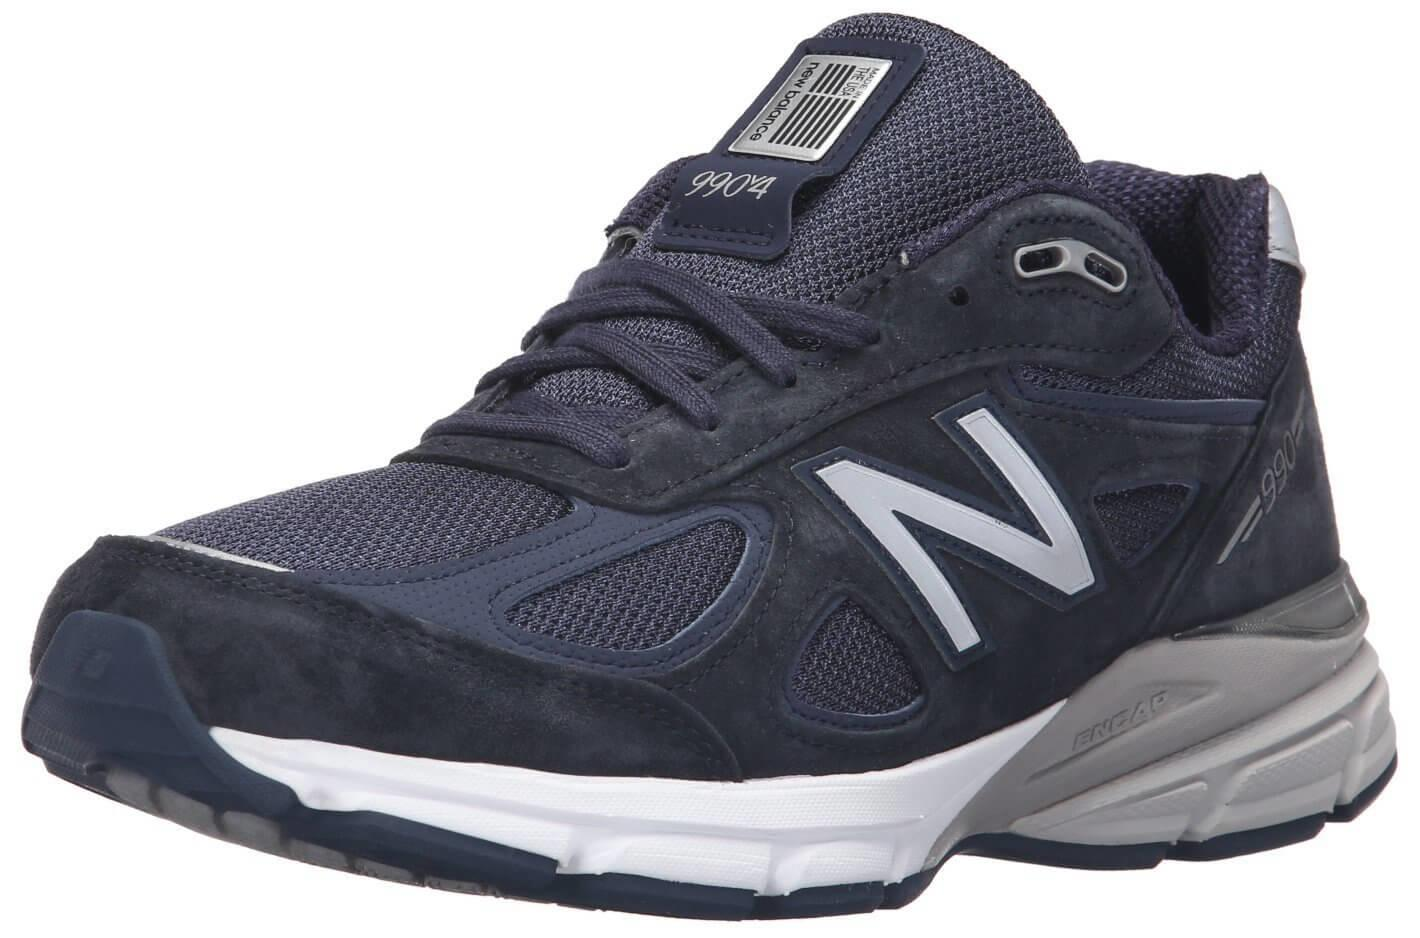 best new balance shoes